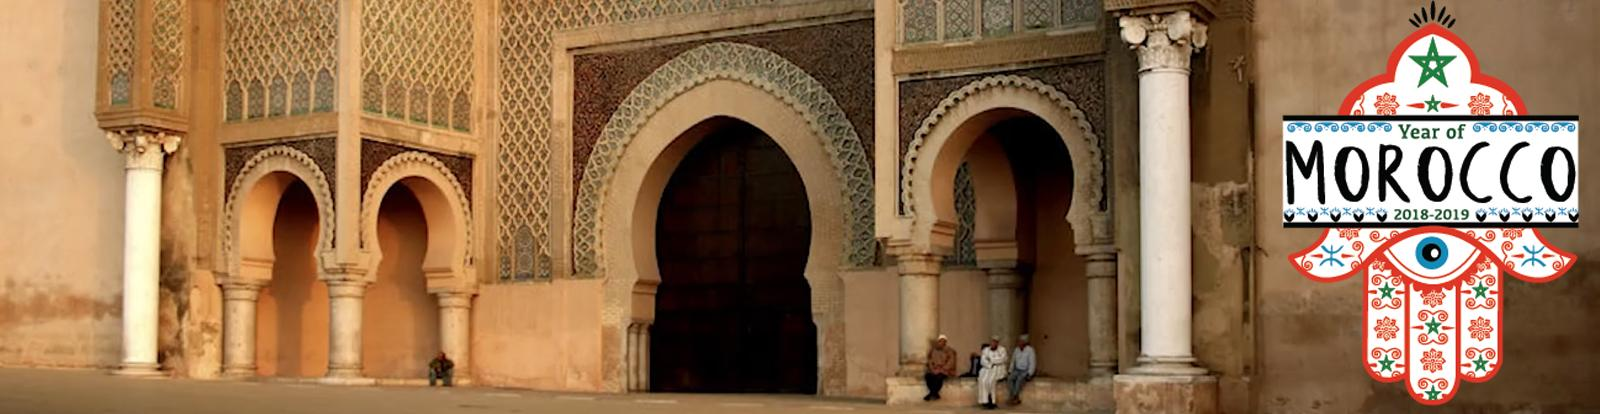 The Mosaic Art of Morocco